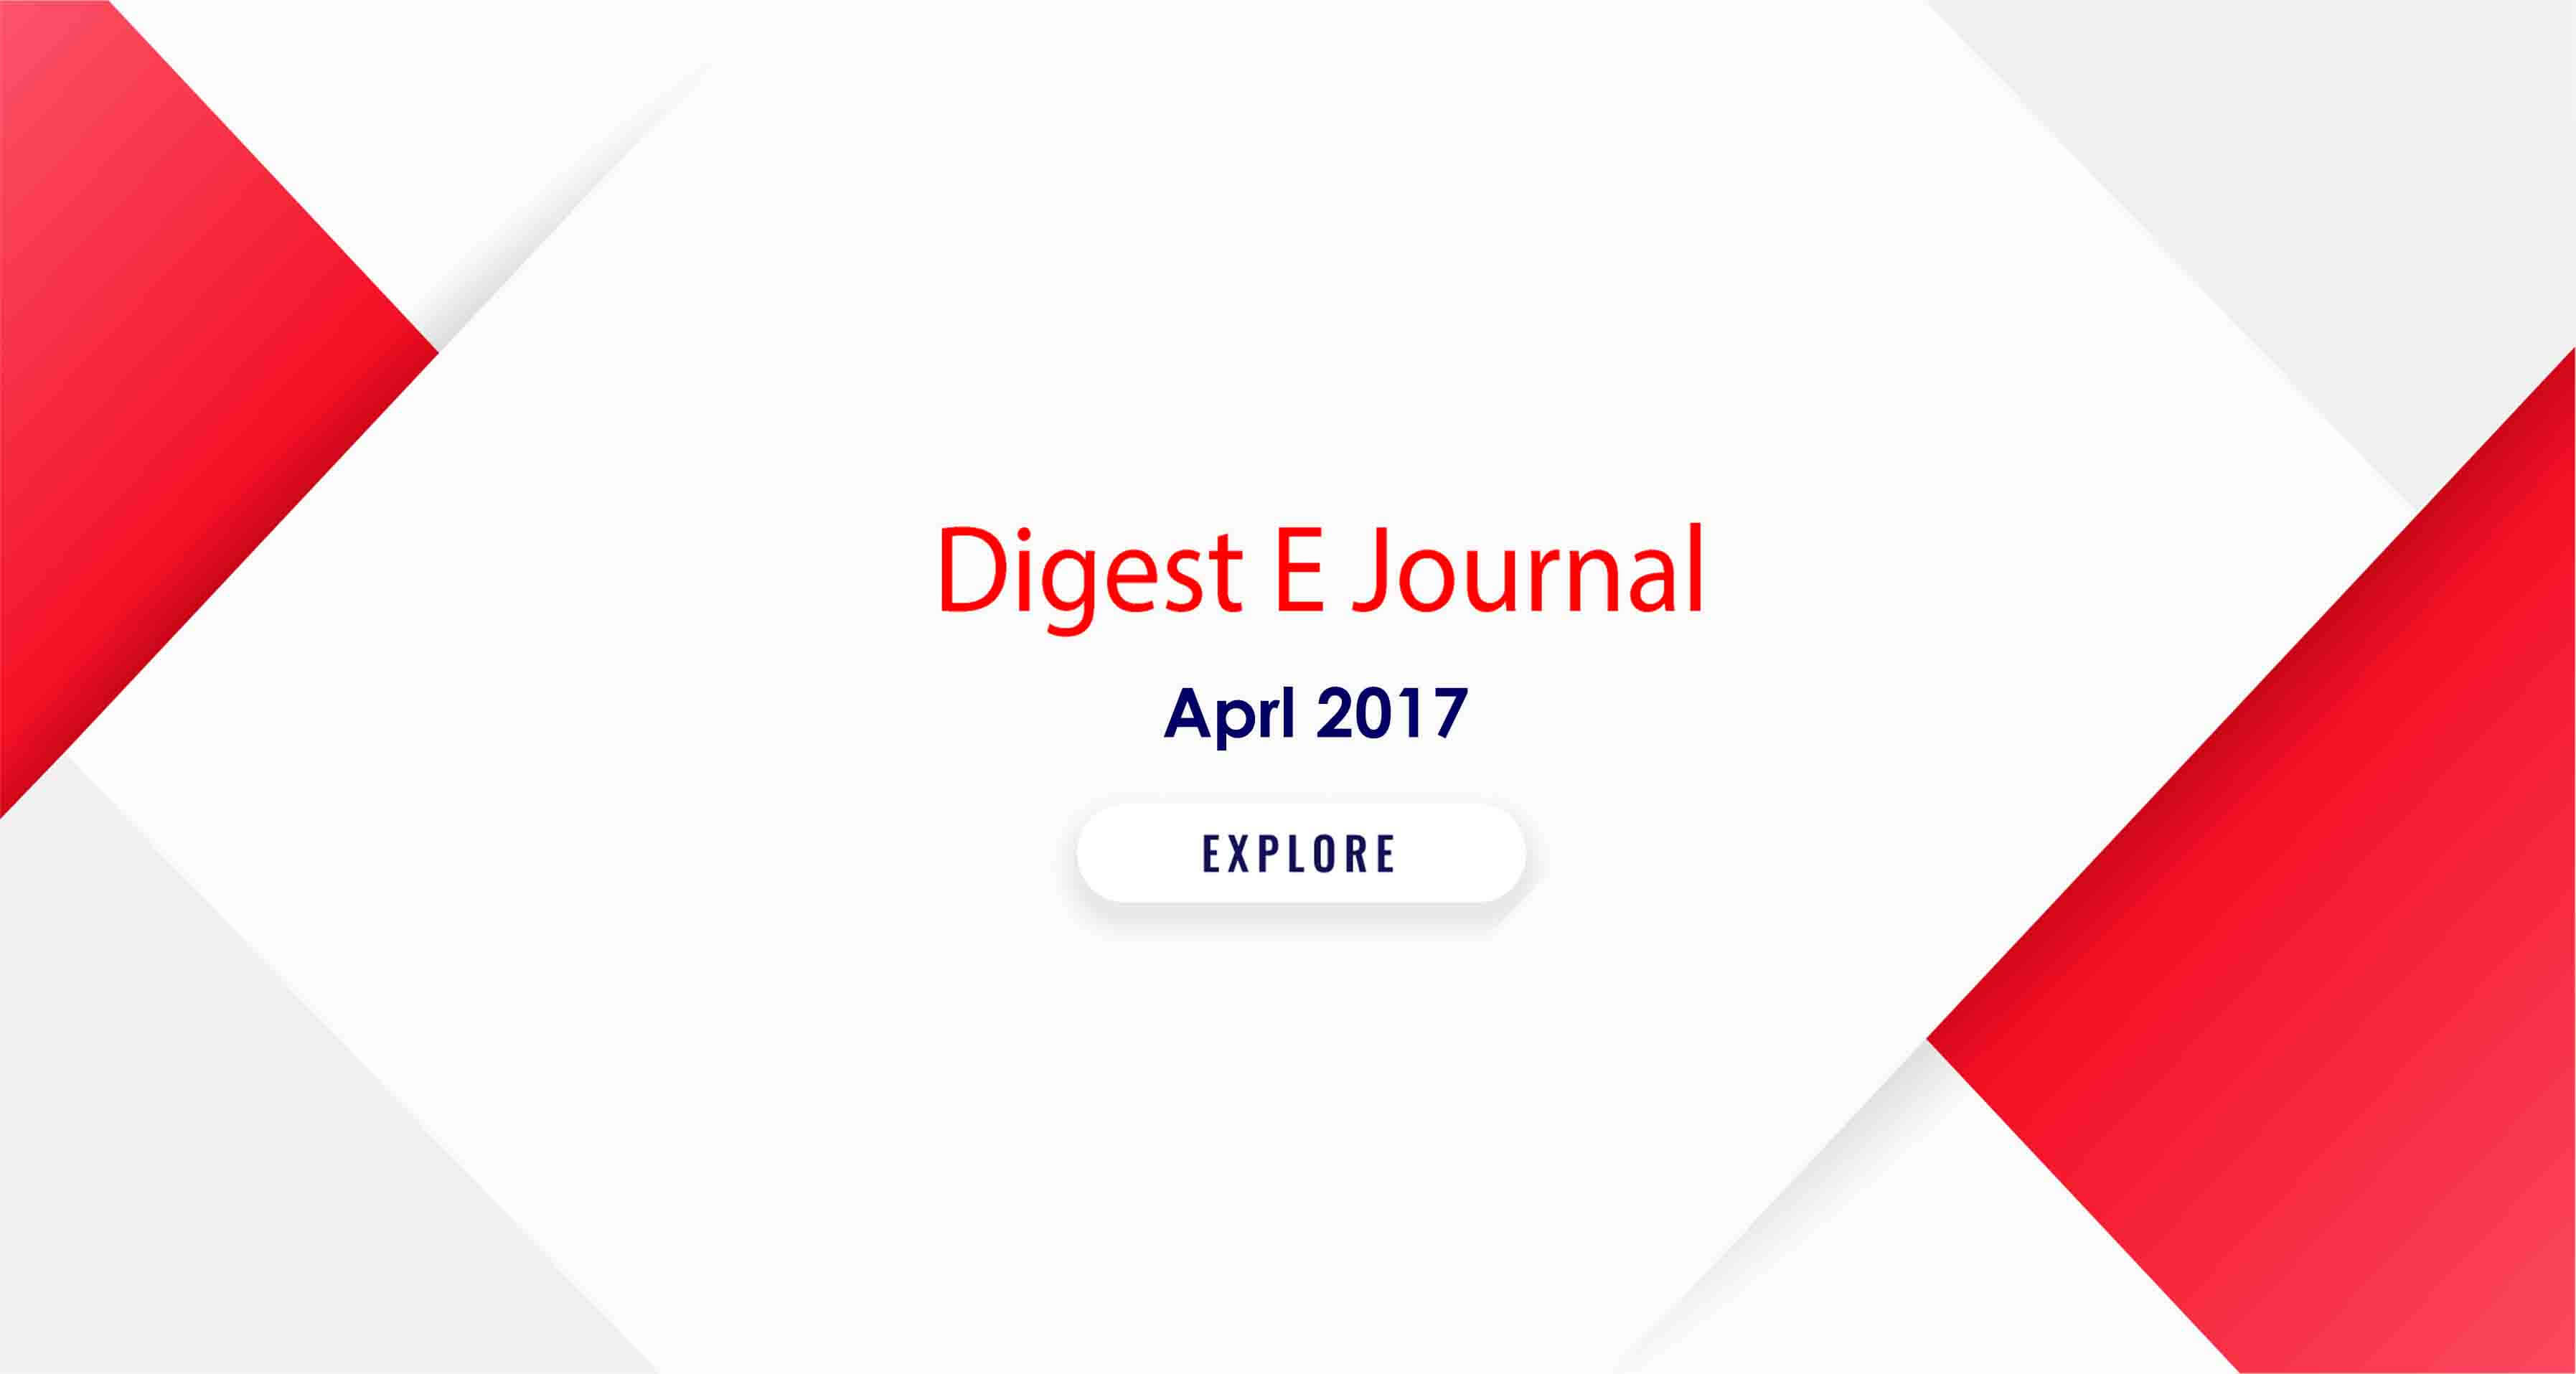 APRIL 2017 INTERNS DIGEST